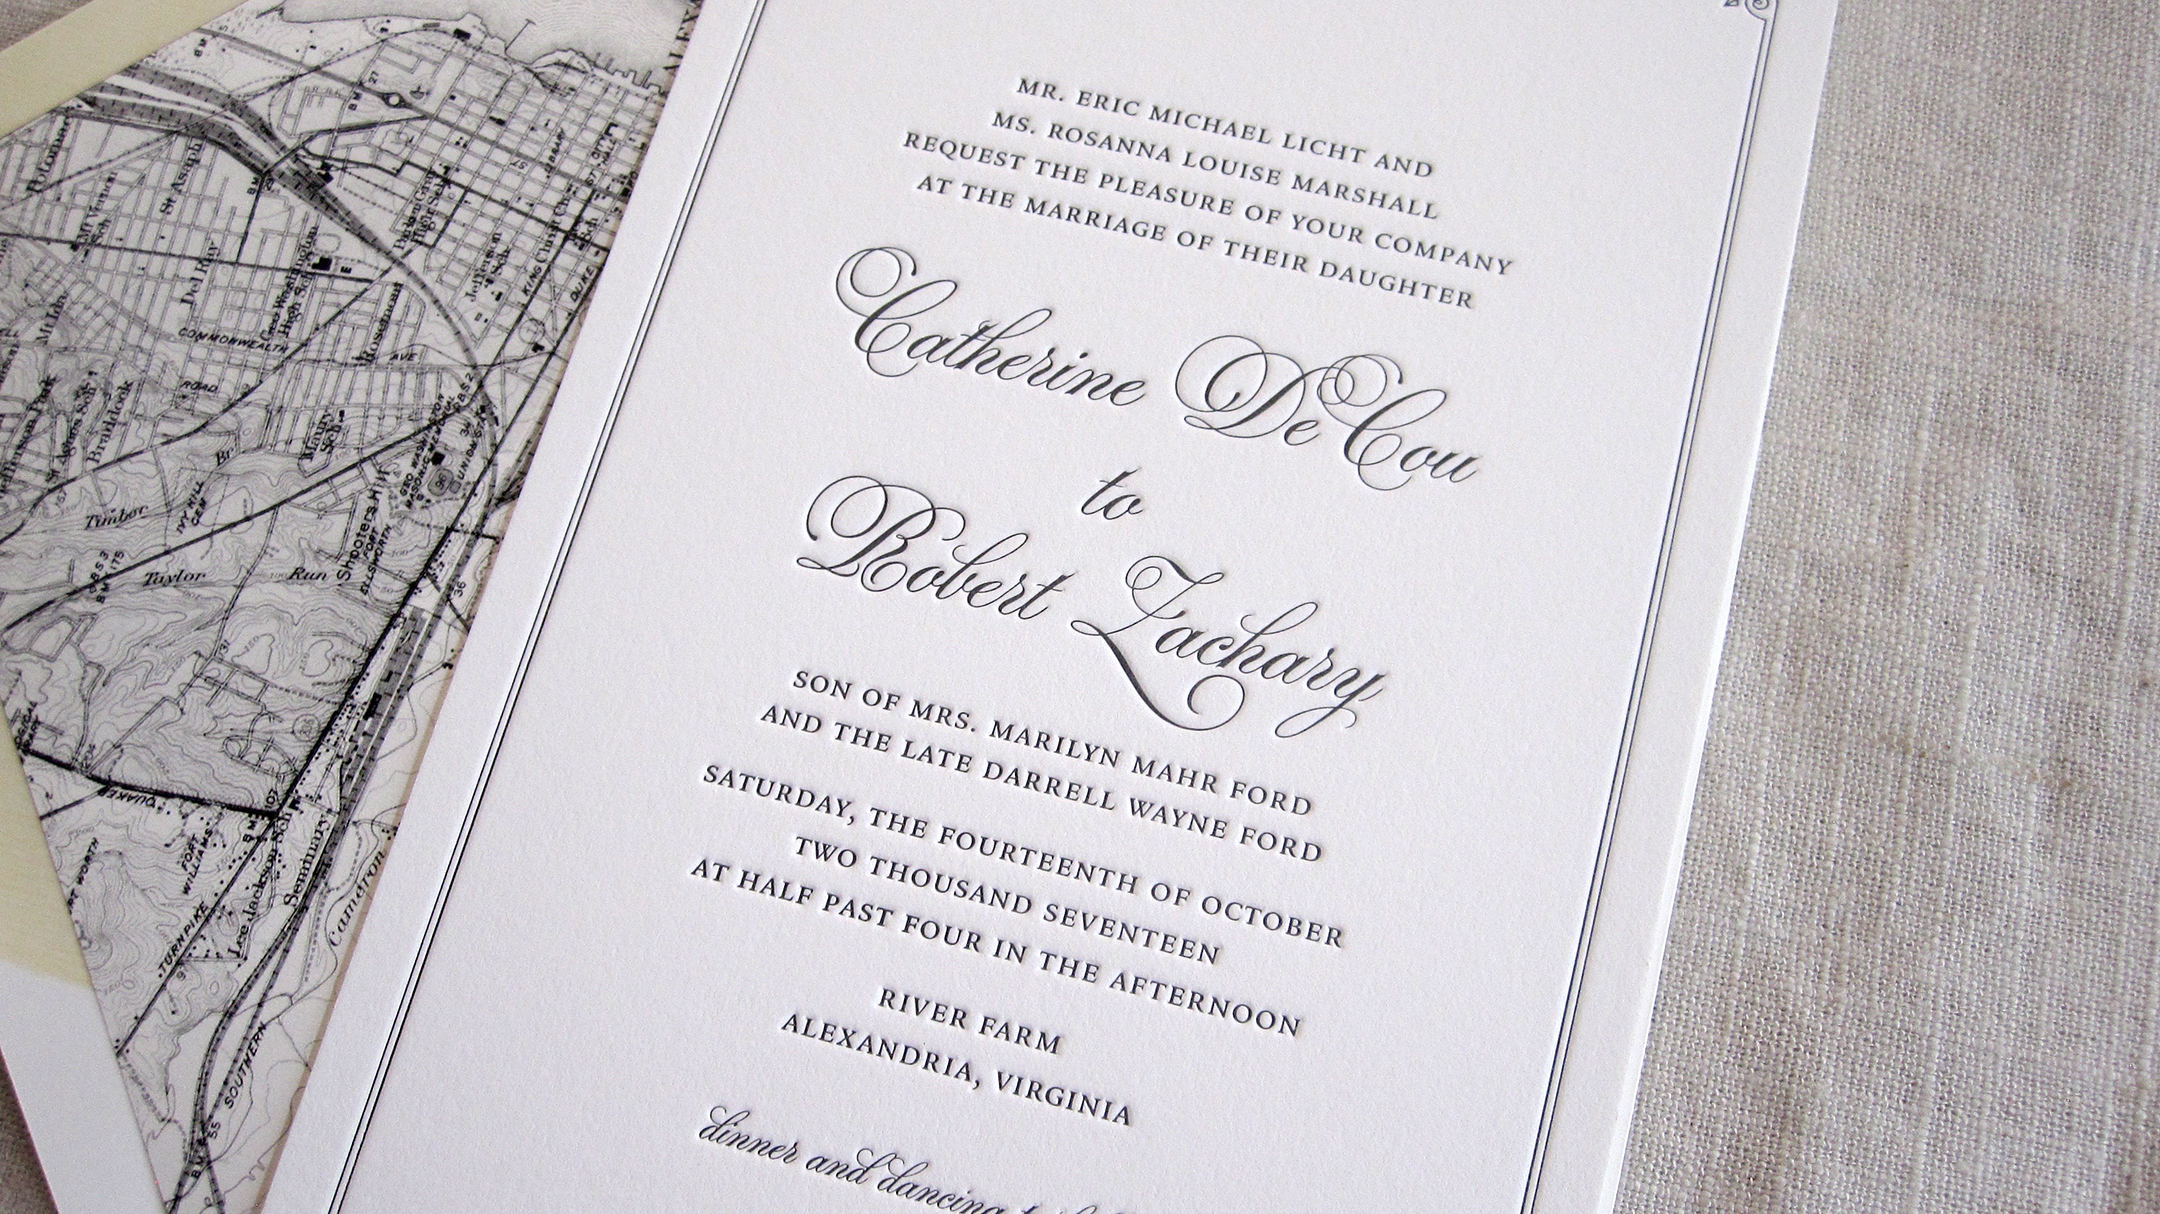 DC_wedding_invitations4.jpg